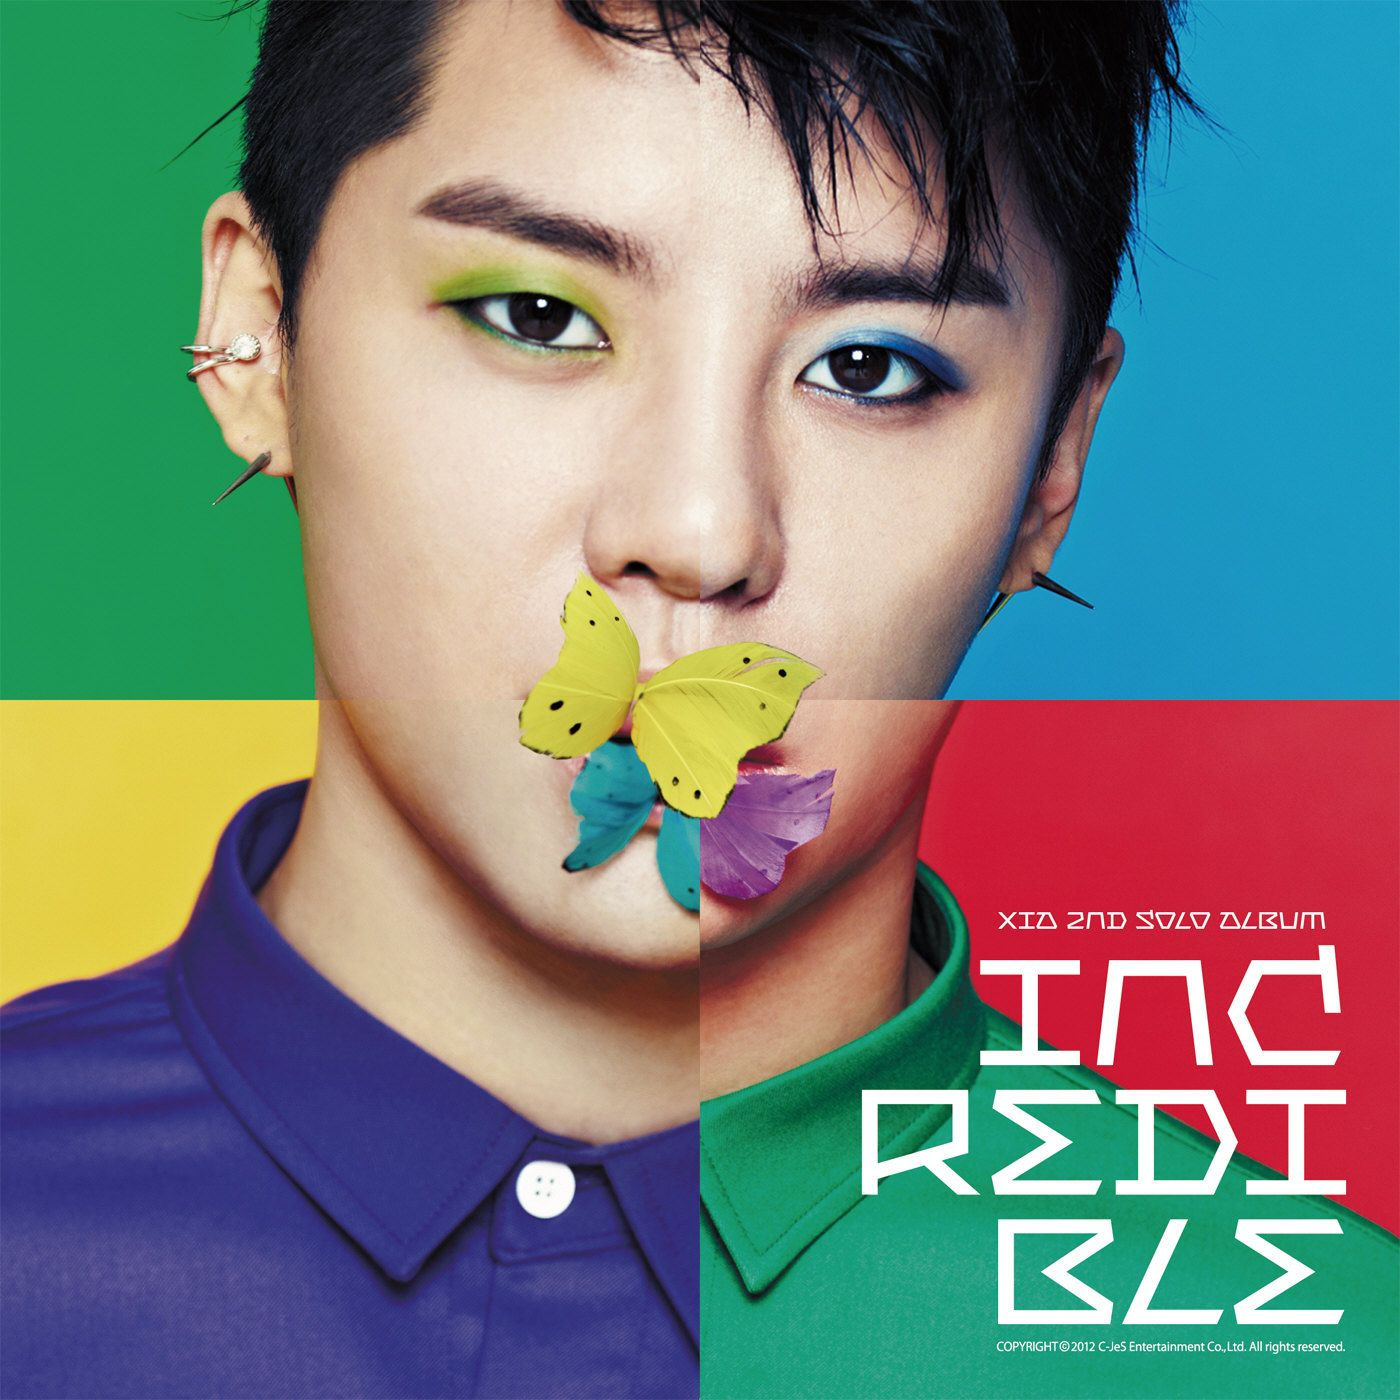 [Album] XIA (Junsu) - Incredible [VOL. 2]